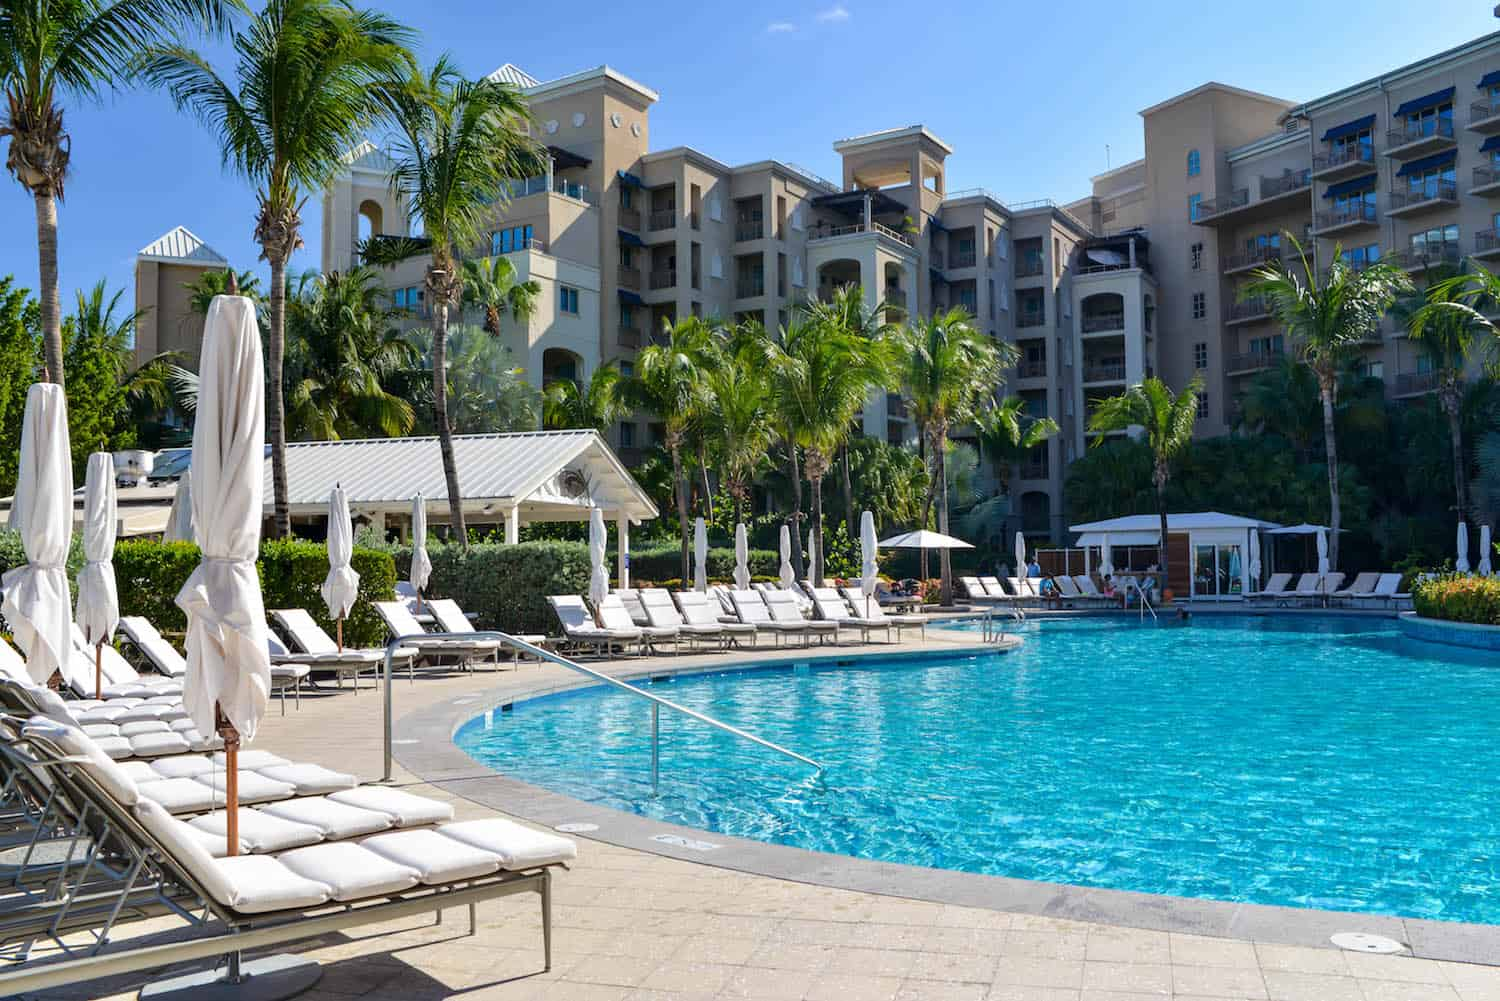 Ritz-Carlton Grand Cayman Pool